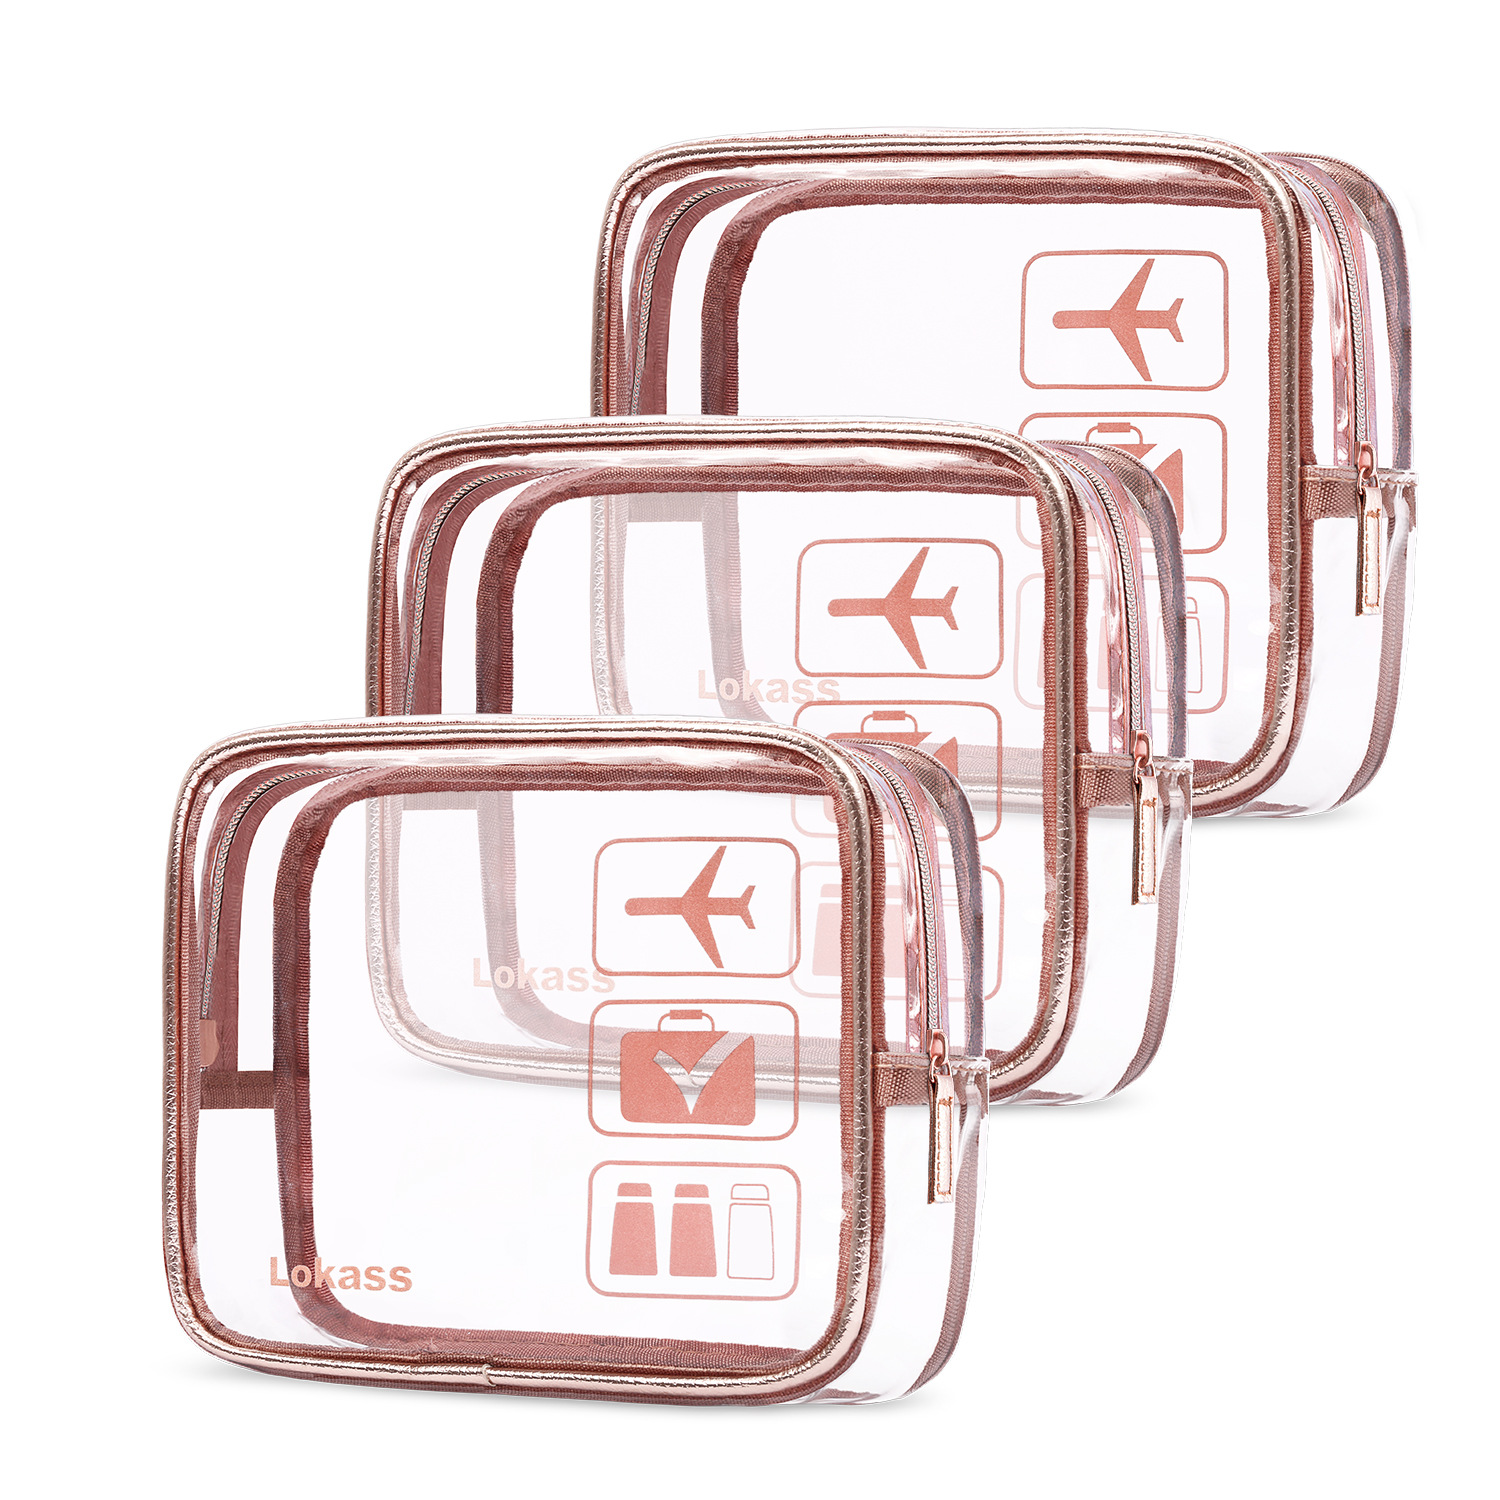 NEW Travel Transparent Cosmetic Bag Women PVC Clear Makeup Bags Wash Pouch Beauty Organizer Storage Case Toiletry Bag